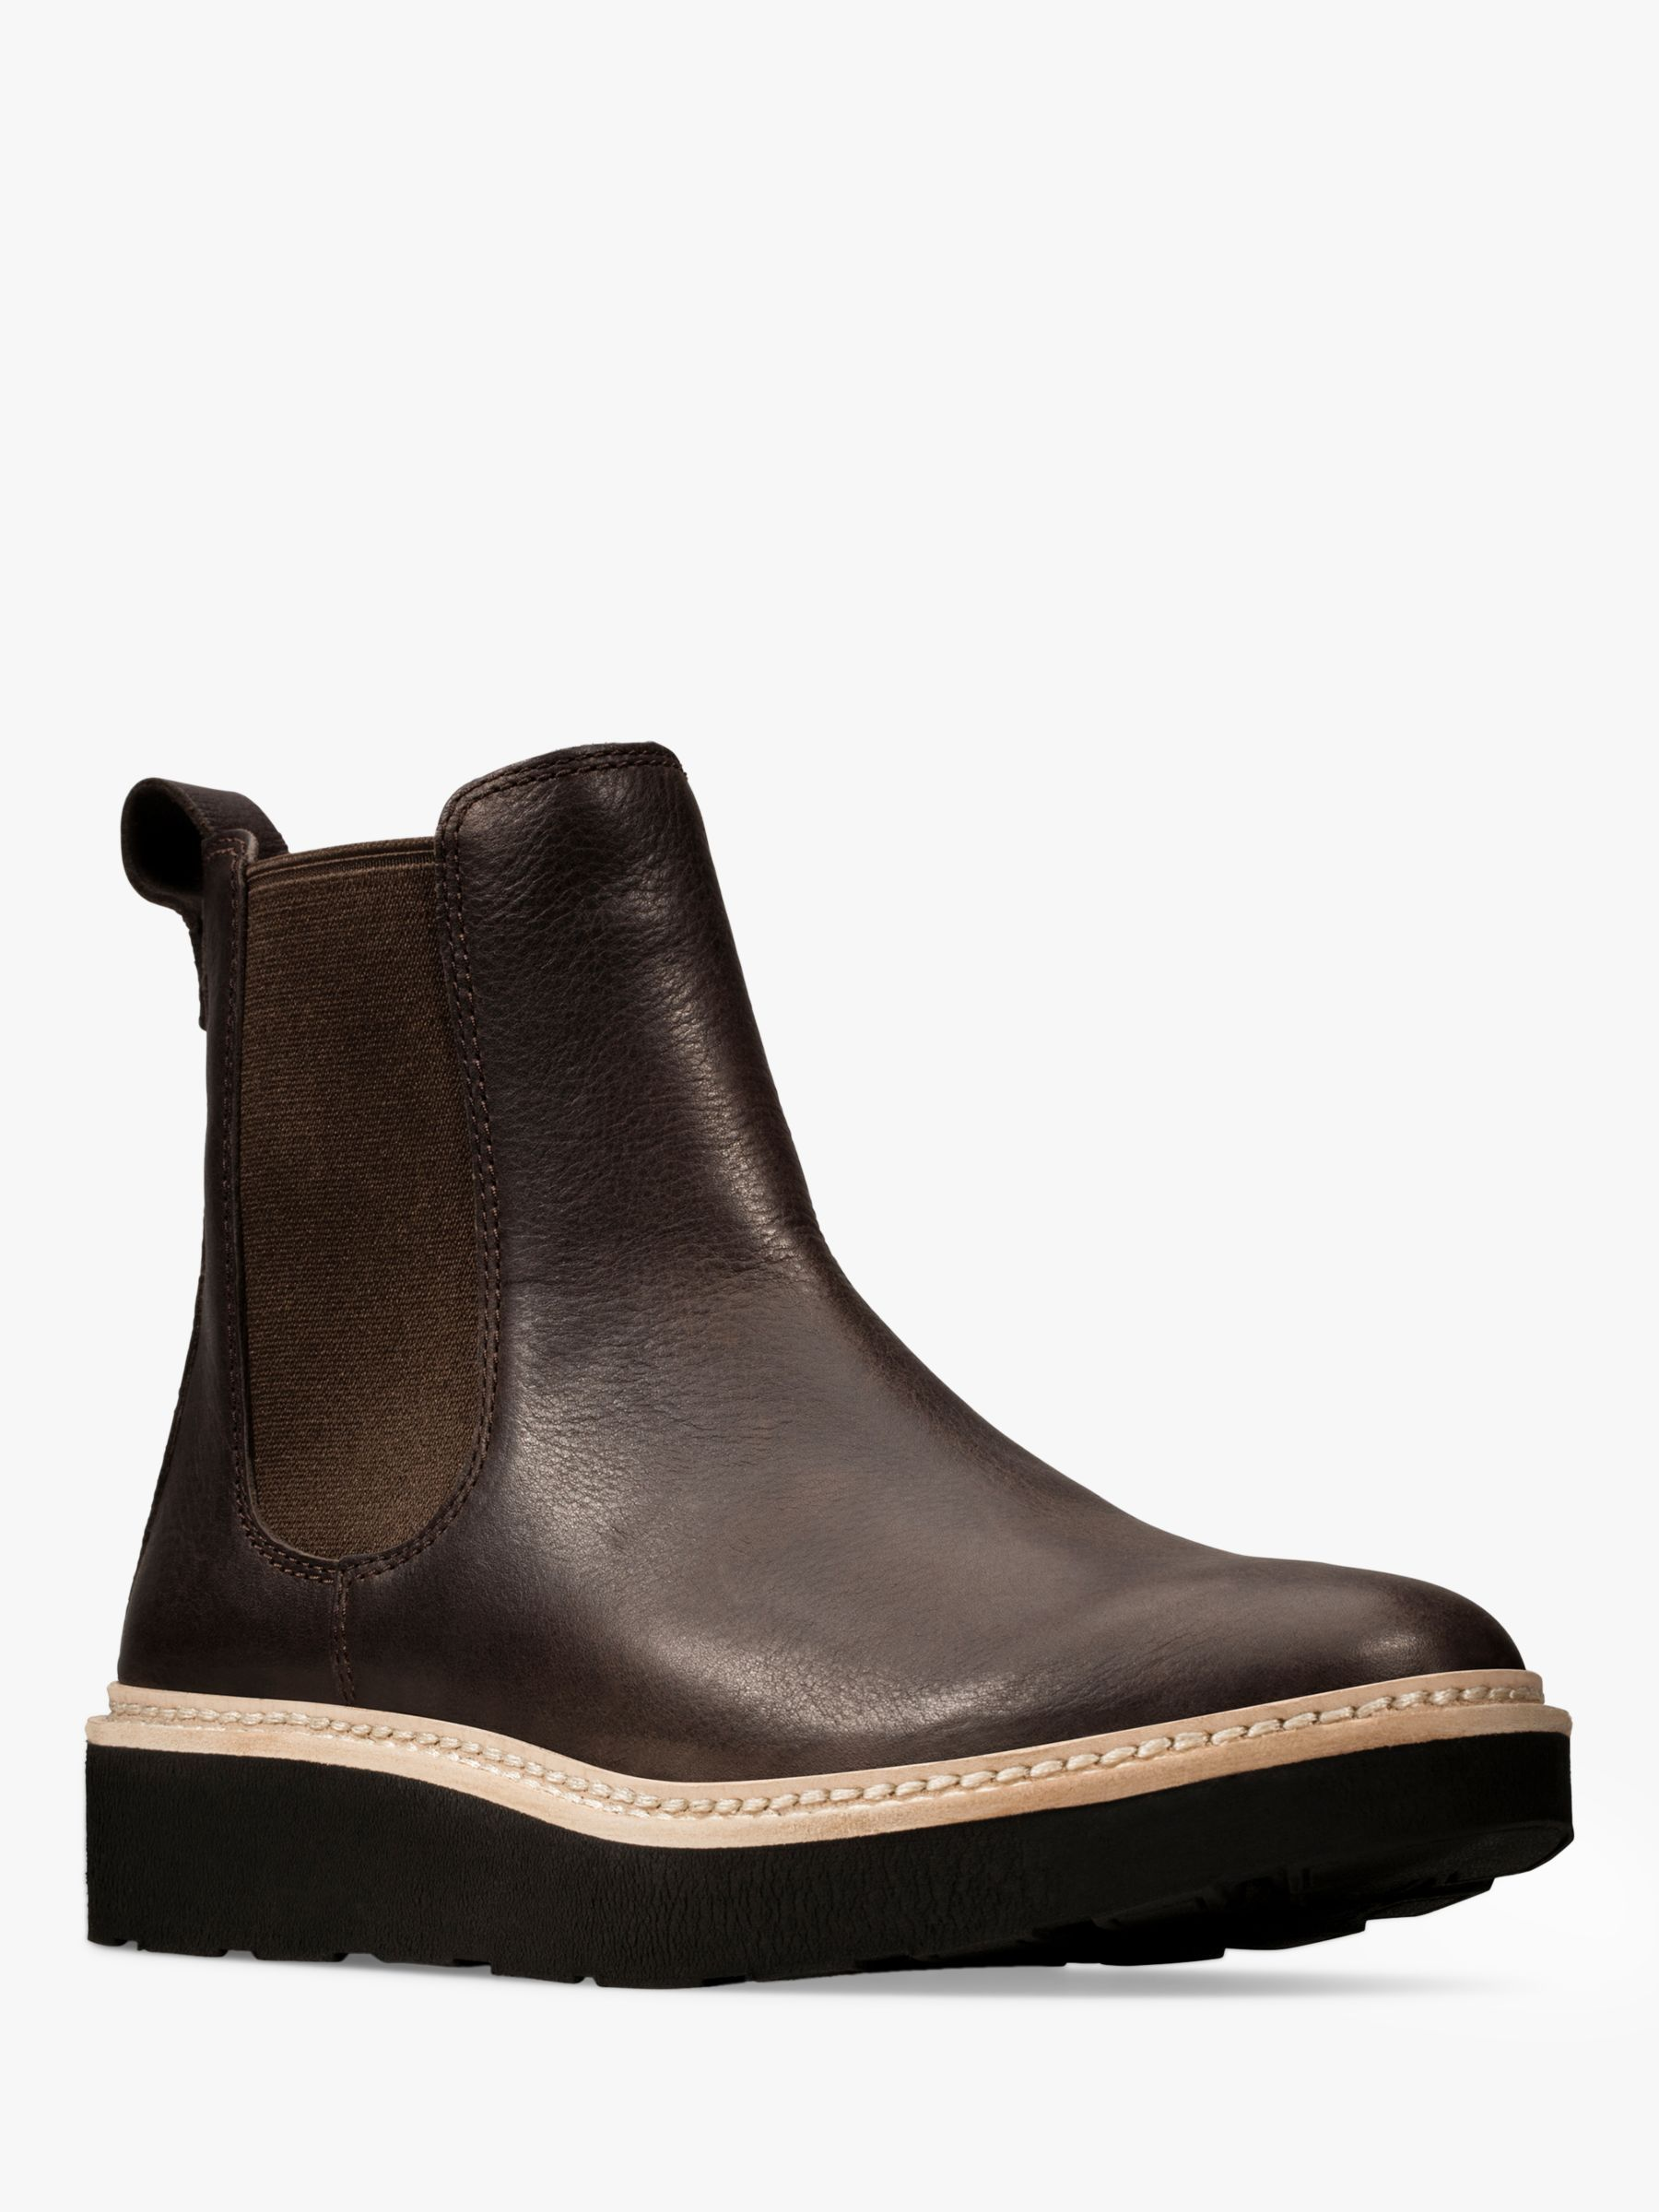 Details about New Clarks Womens Leather Ankle Biker Boots